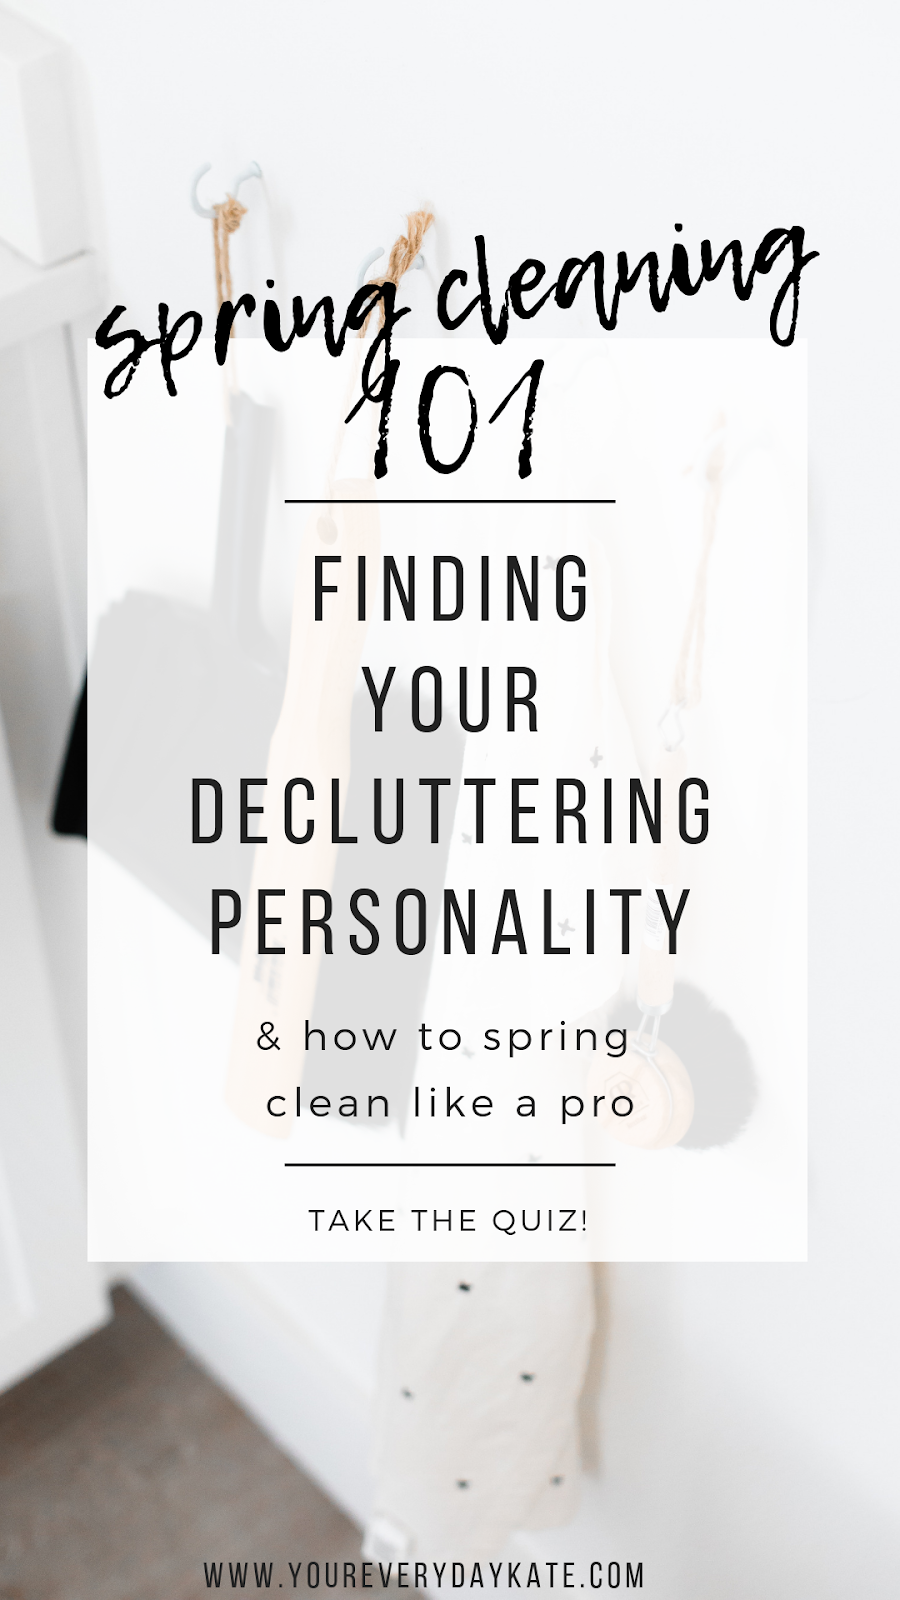 spring cleaning 101 decluttering pinterest image